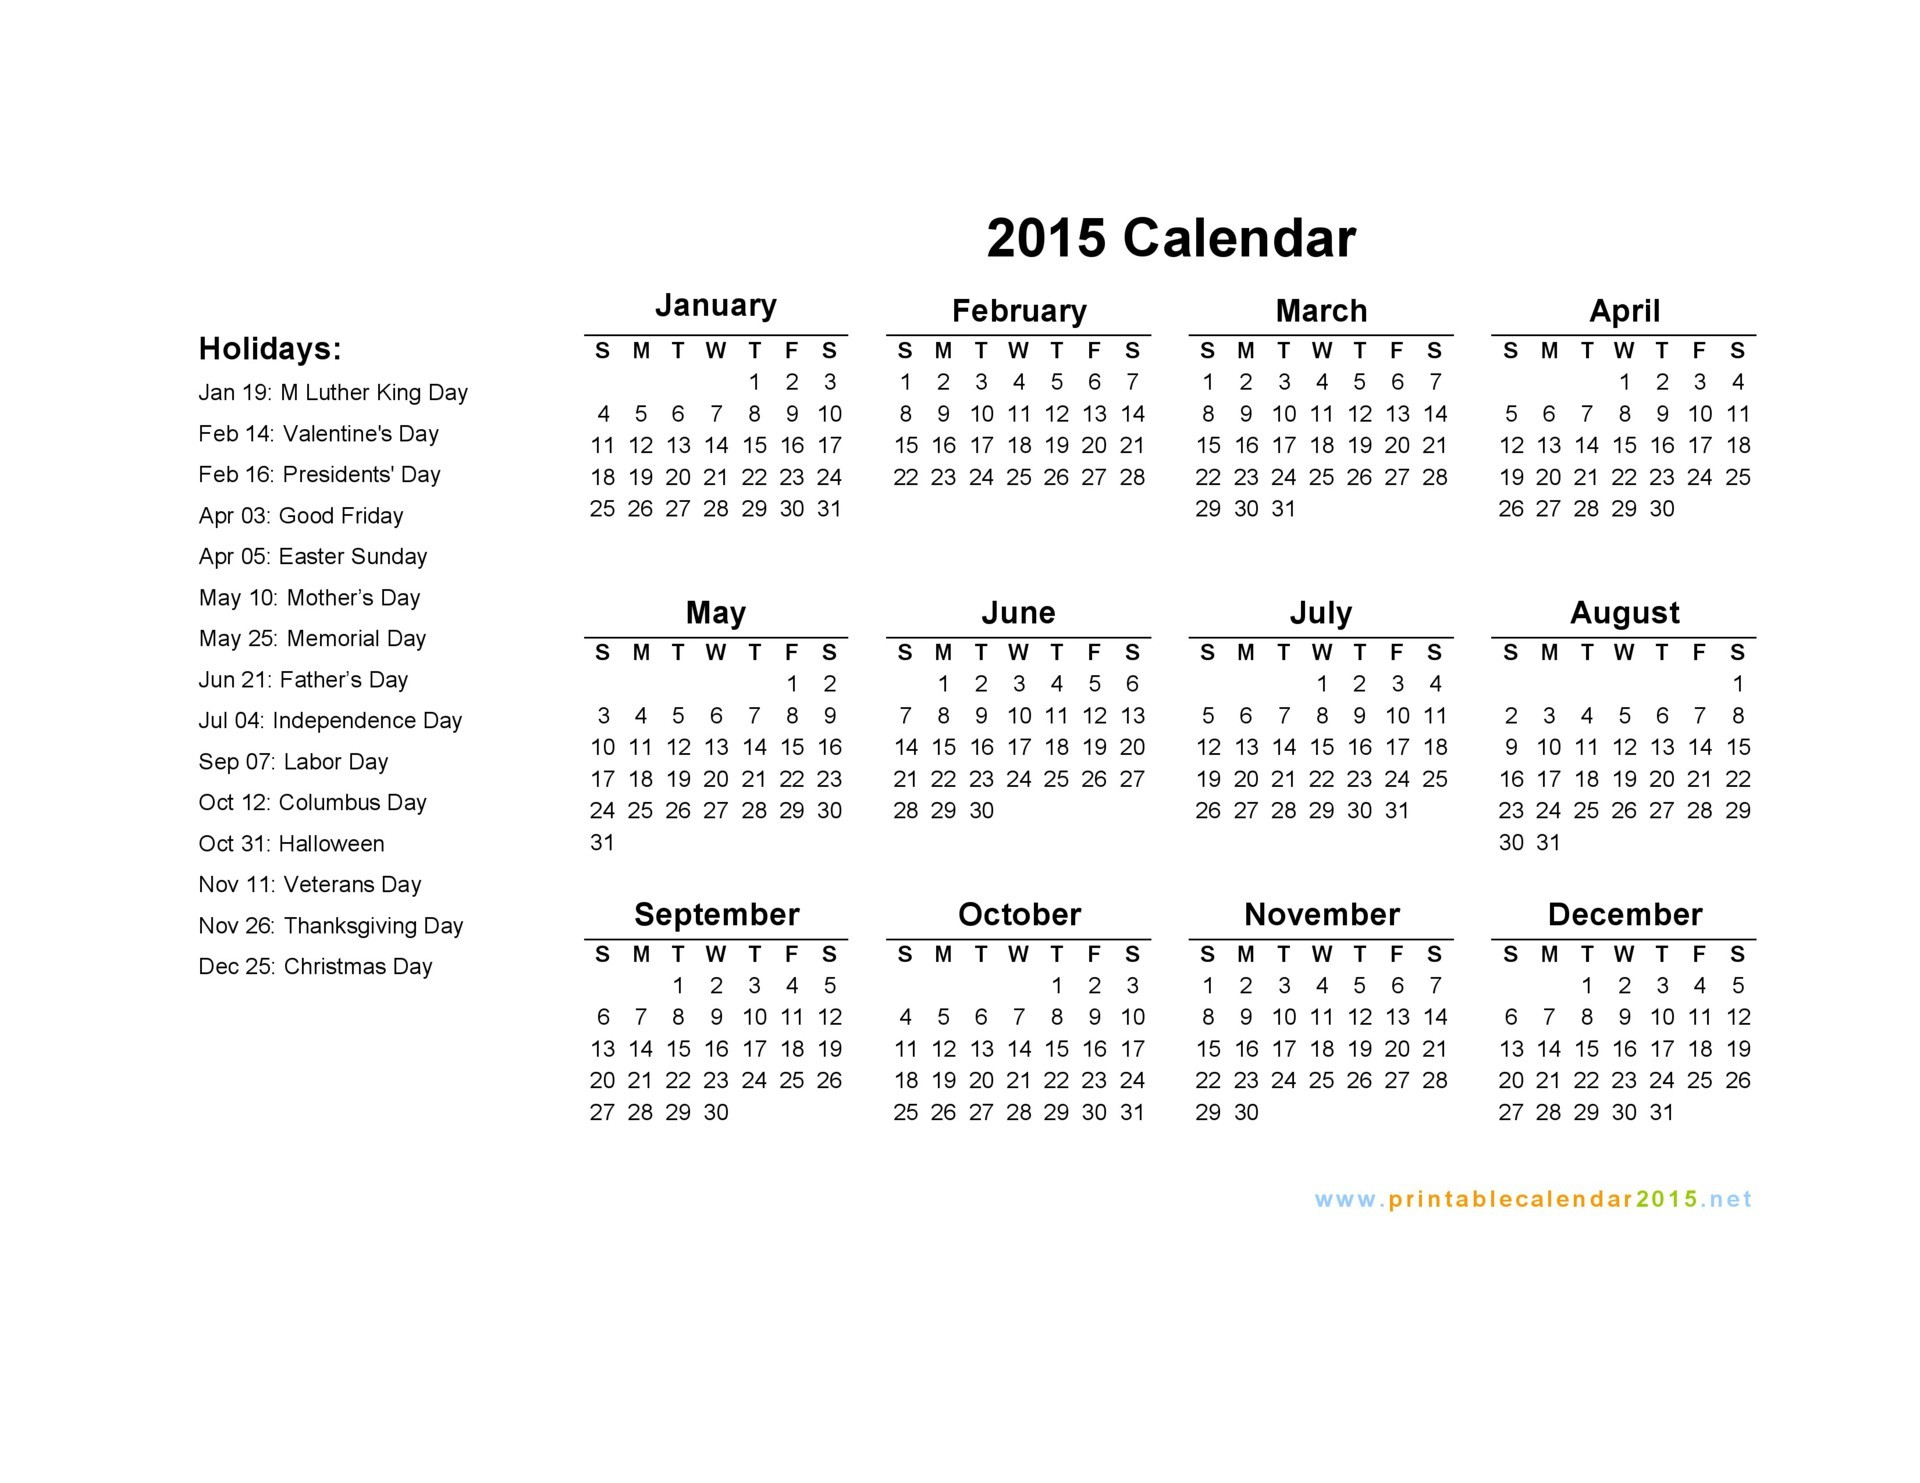 2015 calendar template with canadian holidays - calendar with holidays 2015 pictures images